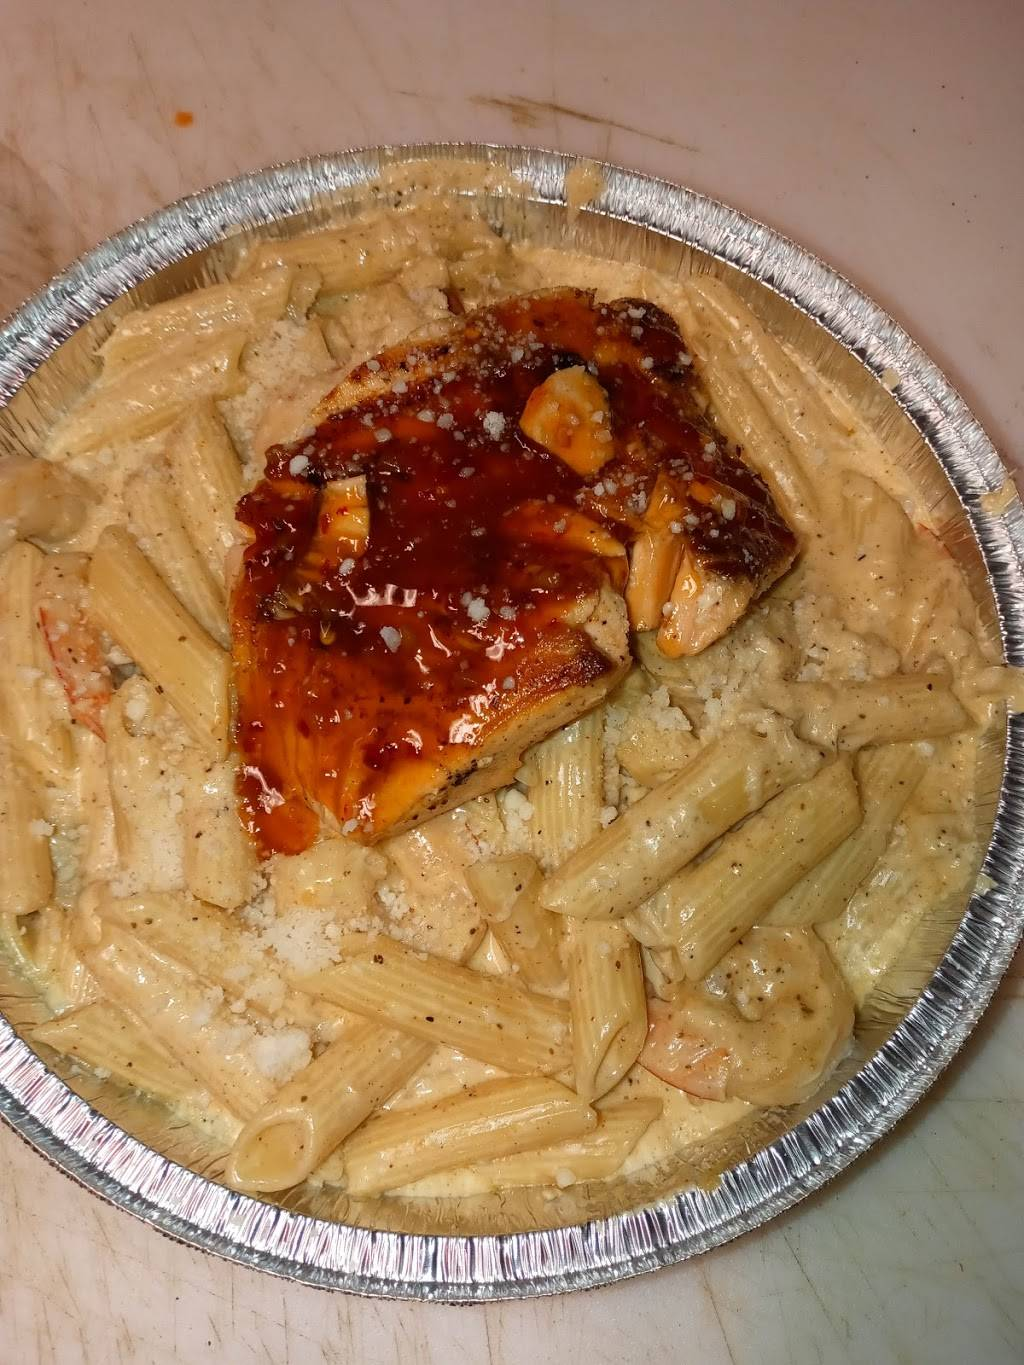 Grab Your Wings   restaurant   714 W 9th St, Chester, PA 19013, USA   4844803078 OR +1 484-480-3078